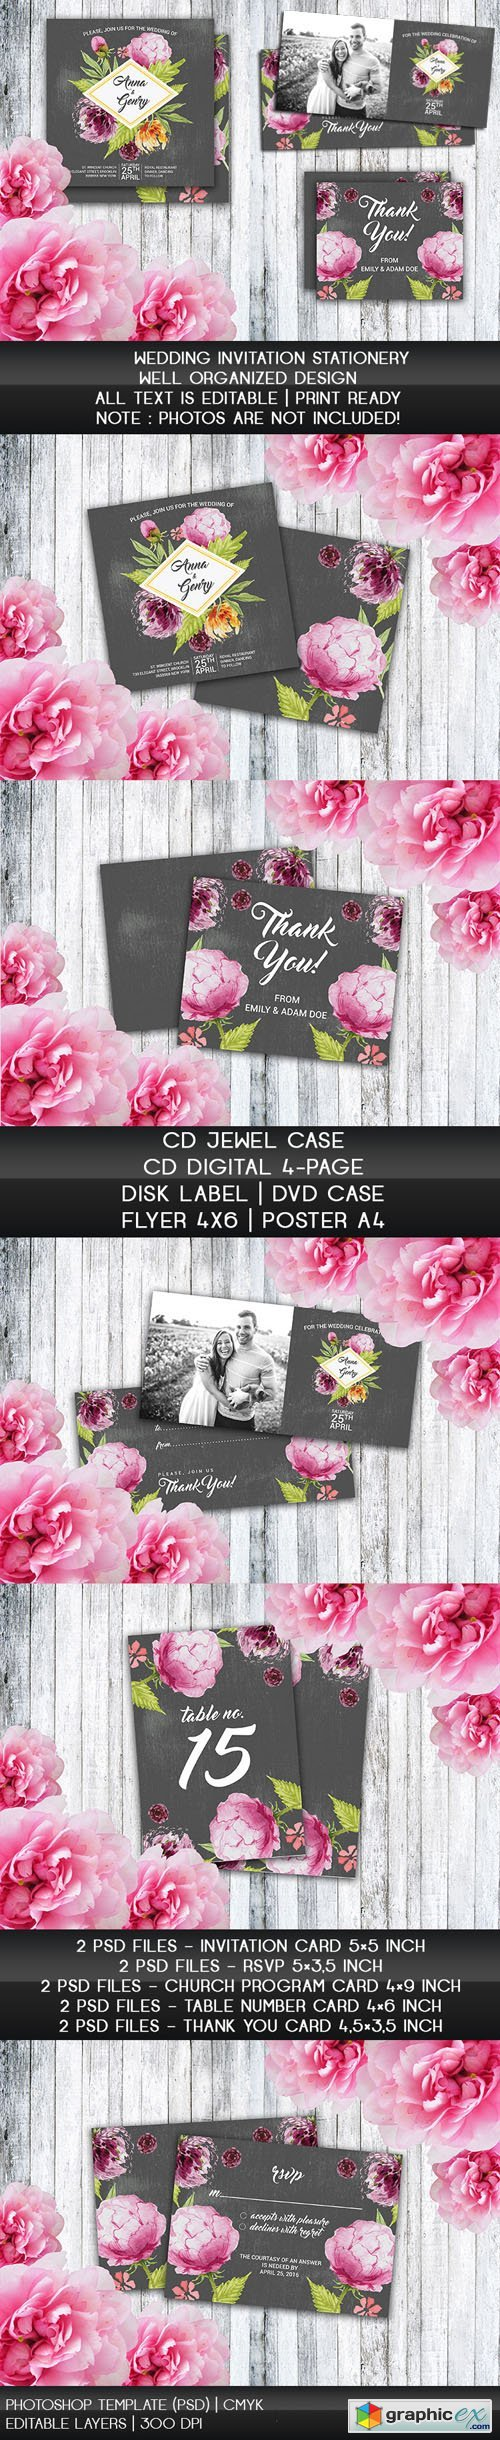 Wedding Invitation Stationery Psd Templates Free Download